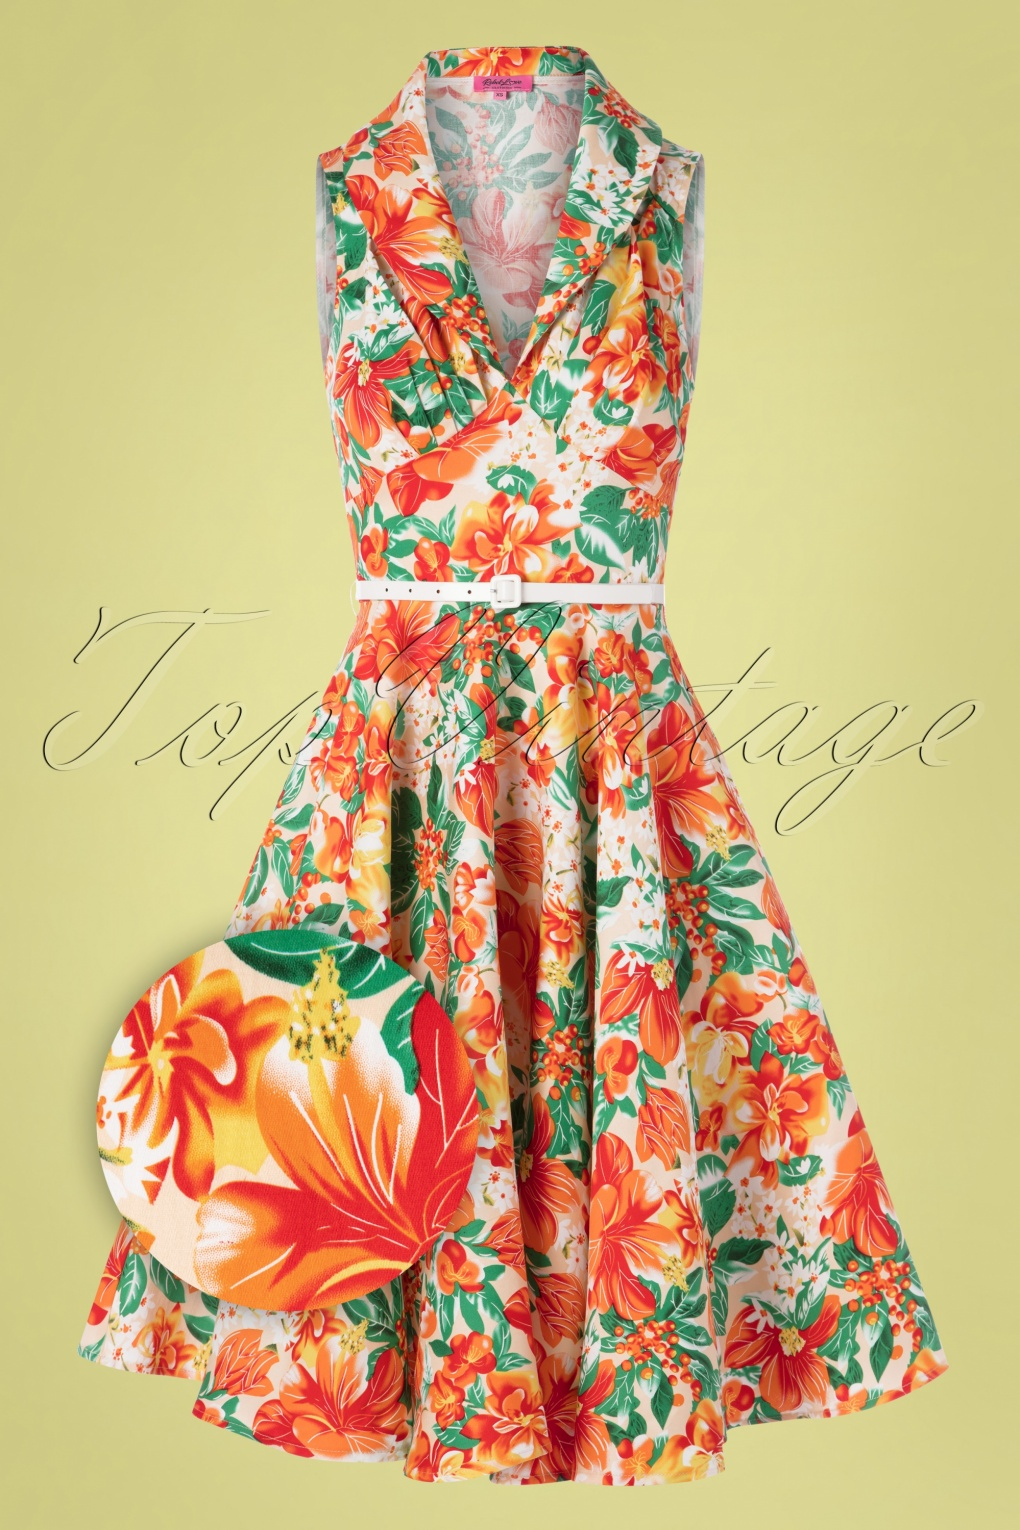 Pin Up Dresses | Pinup Clothing & Fashion 50s Hello Darling Dress in Tropical Orange �97.11 AT vintagedancer.com